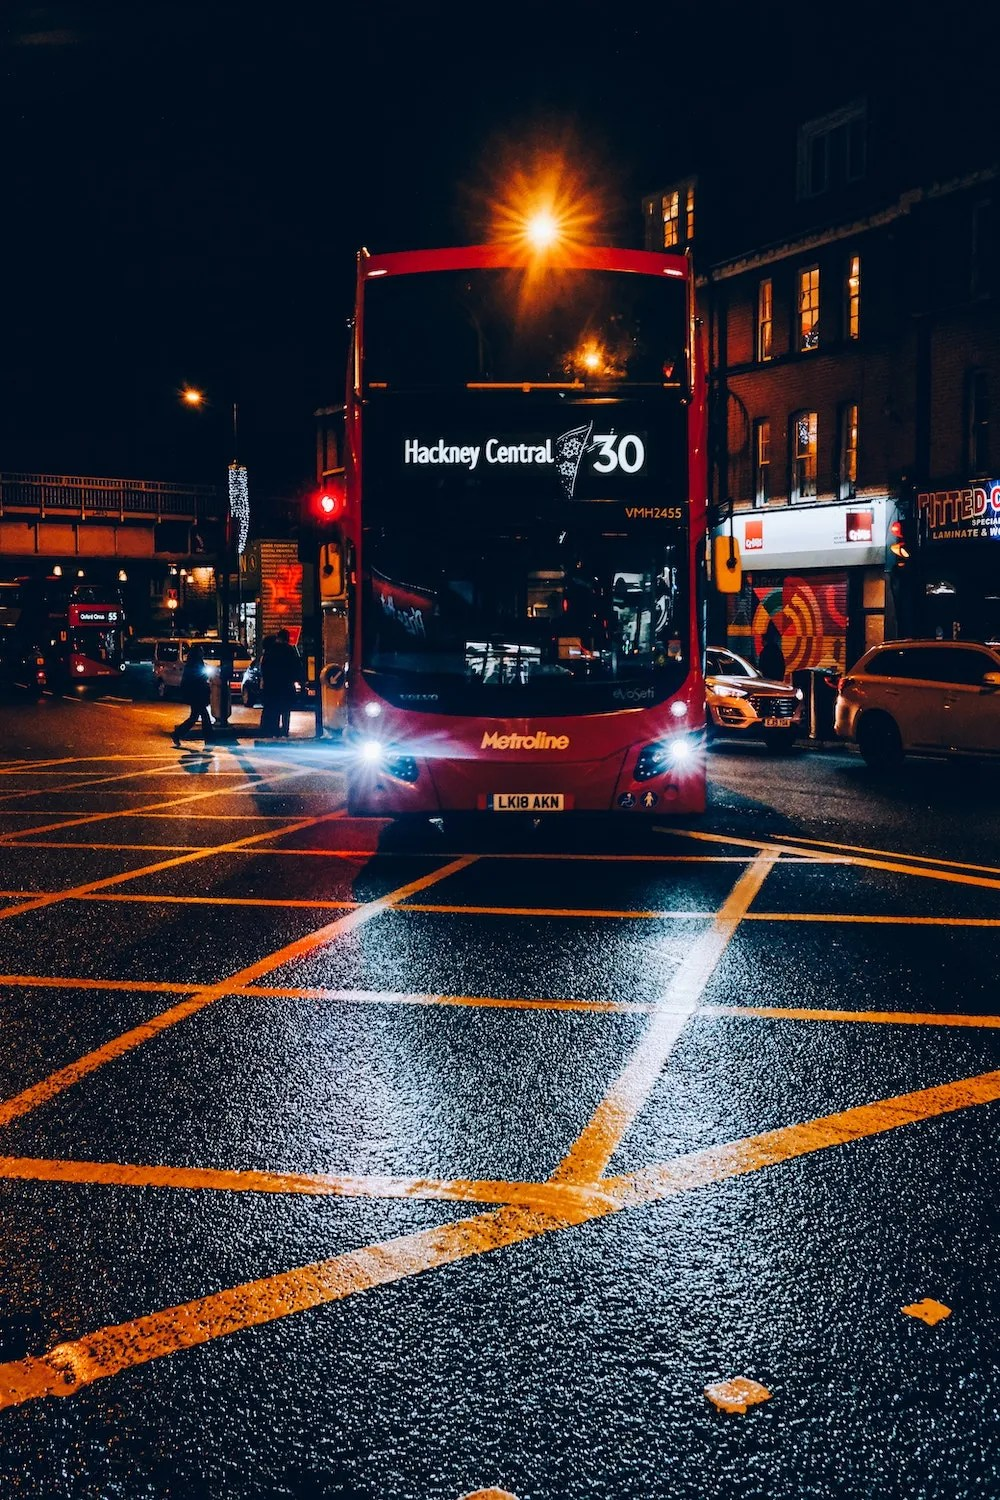 Where to Stay in East London - Hackney Bus